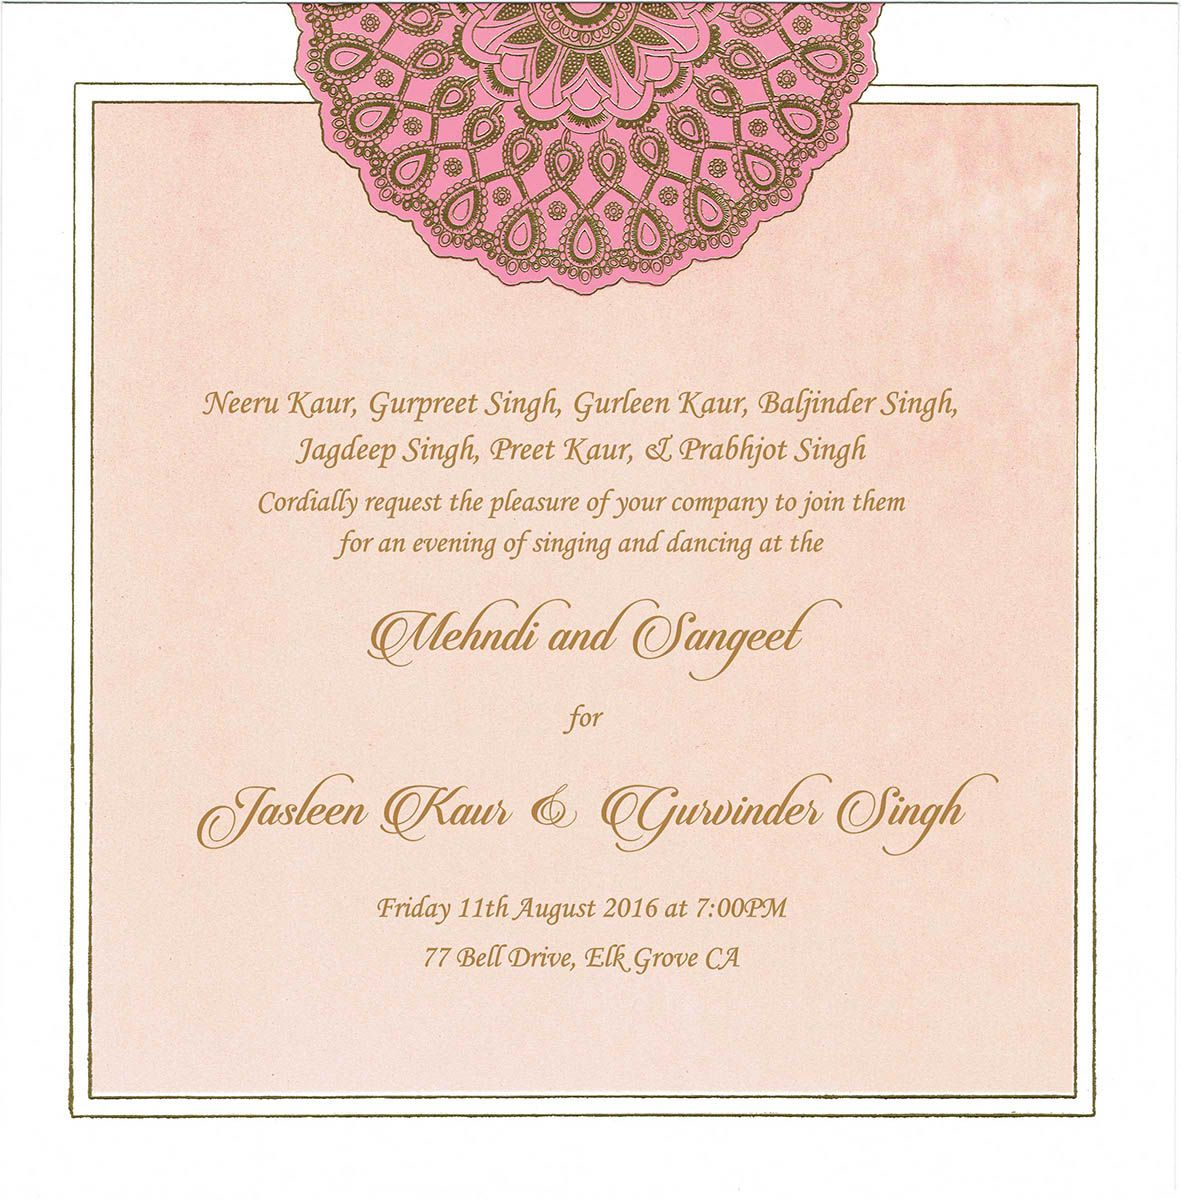 Wedding Invitation Wording For Mehndi Ceremony Indian Wedding Invitation Card Design Wedding Card Design Indian Wedding Invitation Cards